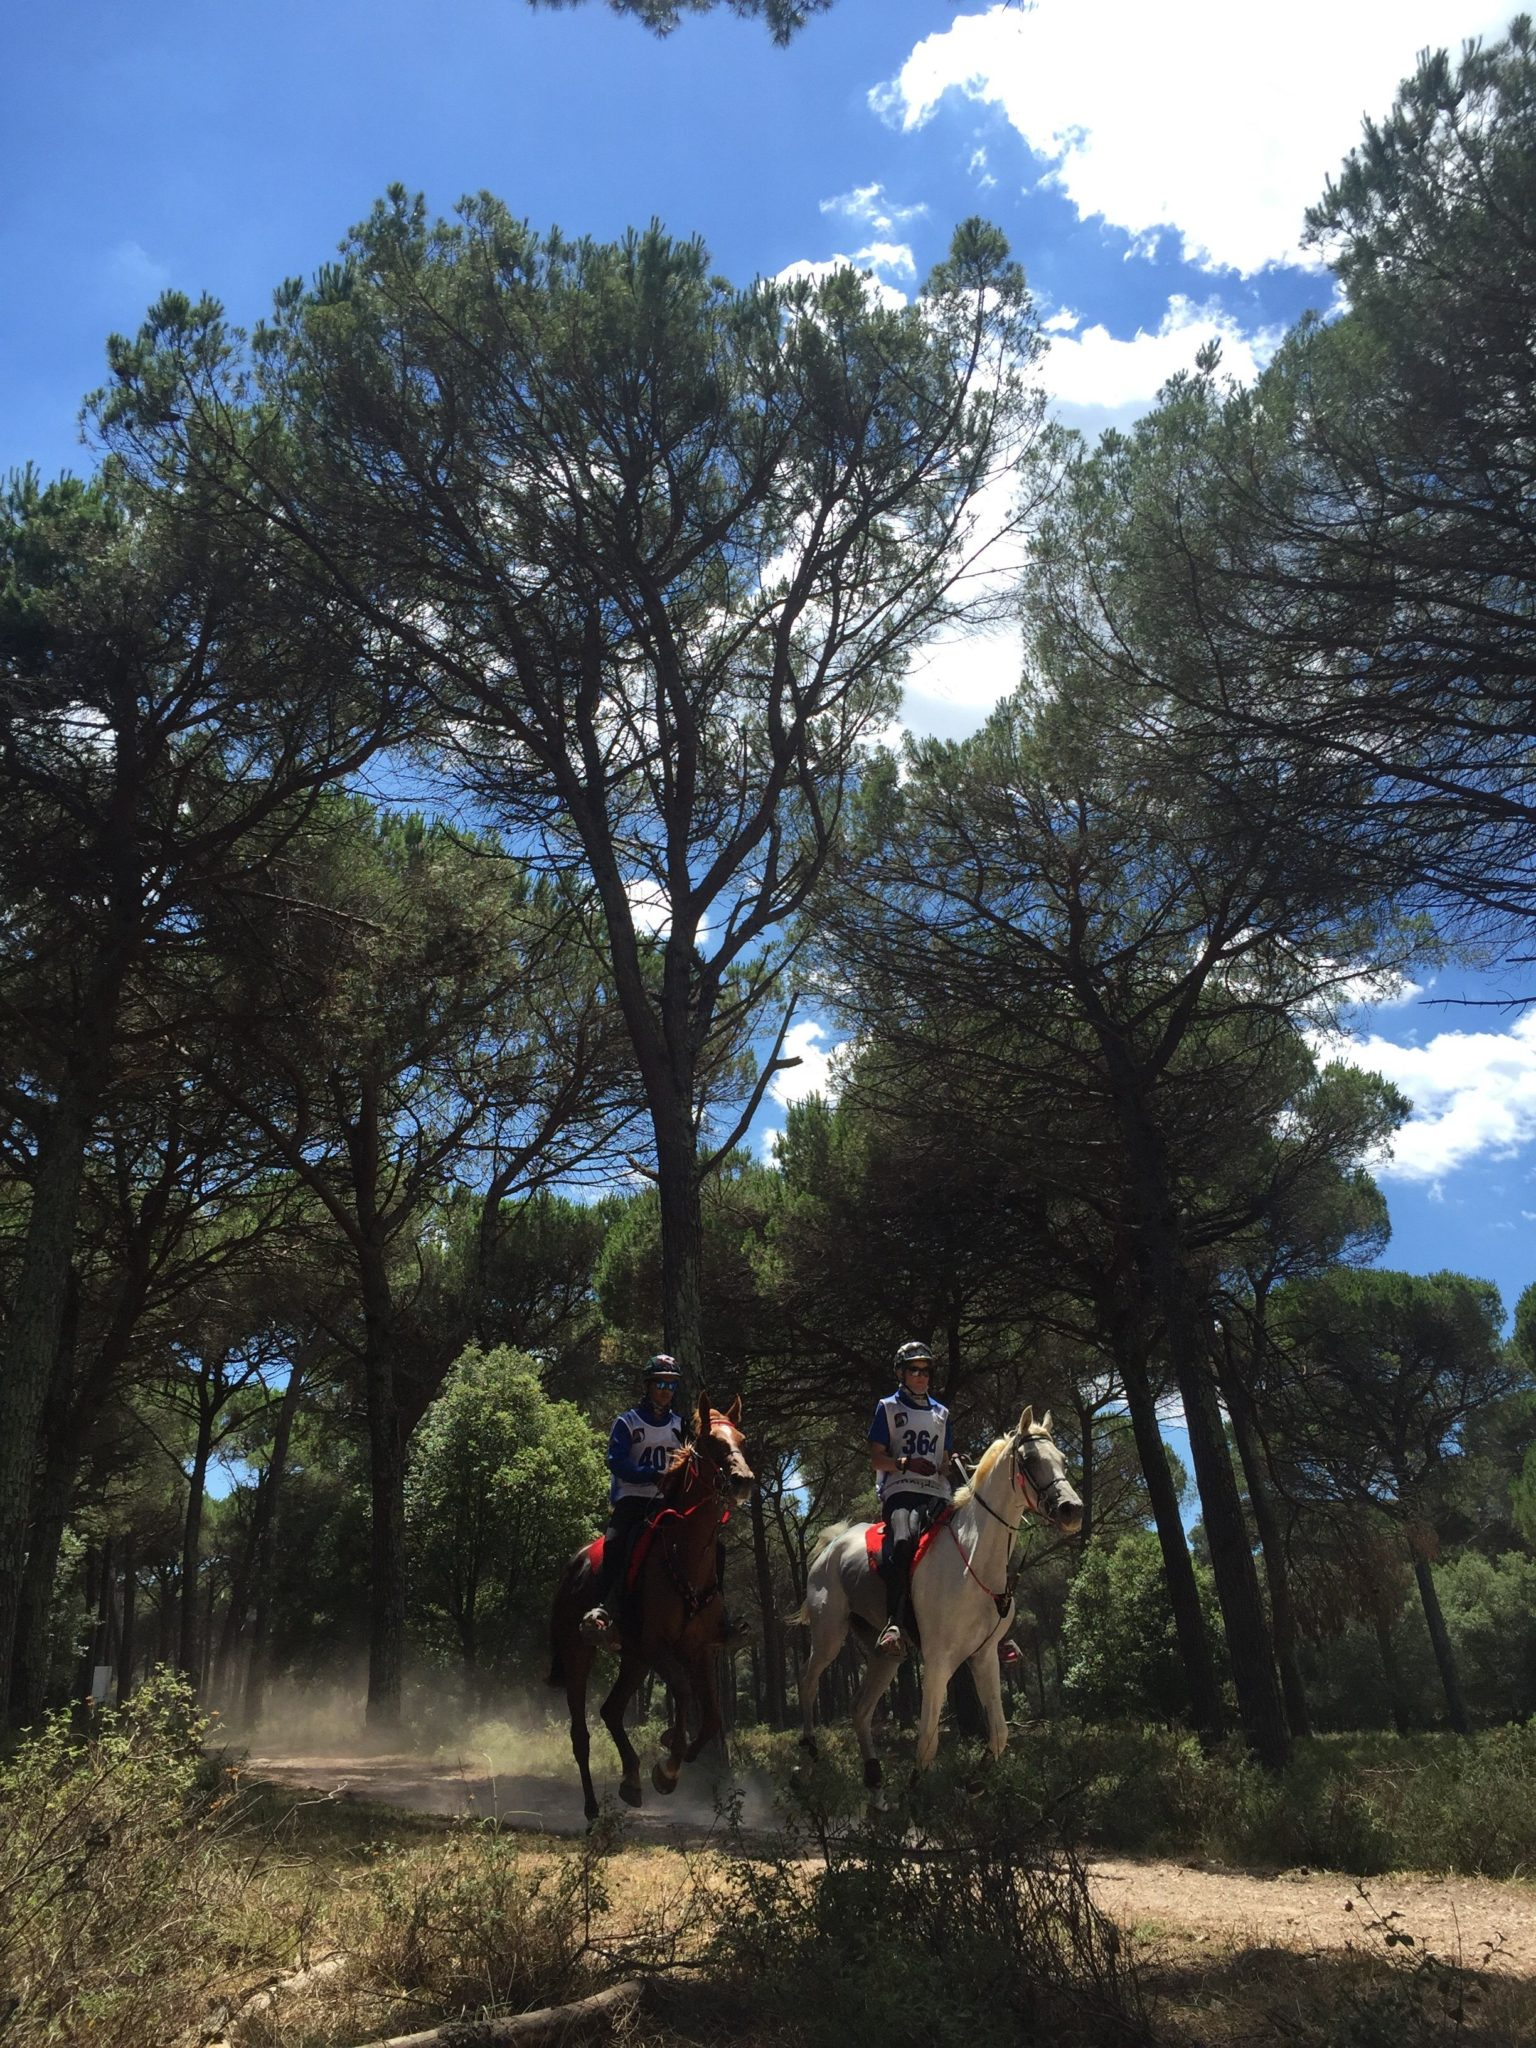 Endurance World Toscana Endurance Lifestyle. Riding in the woods.